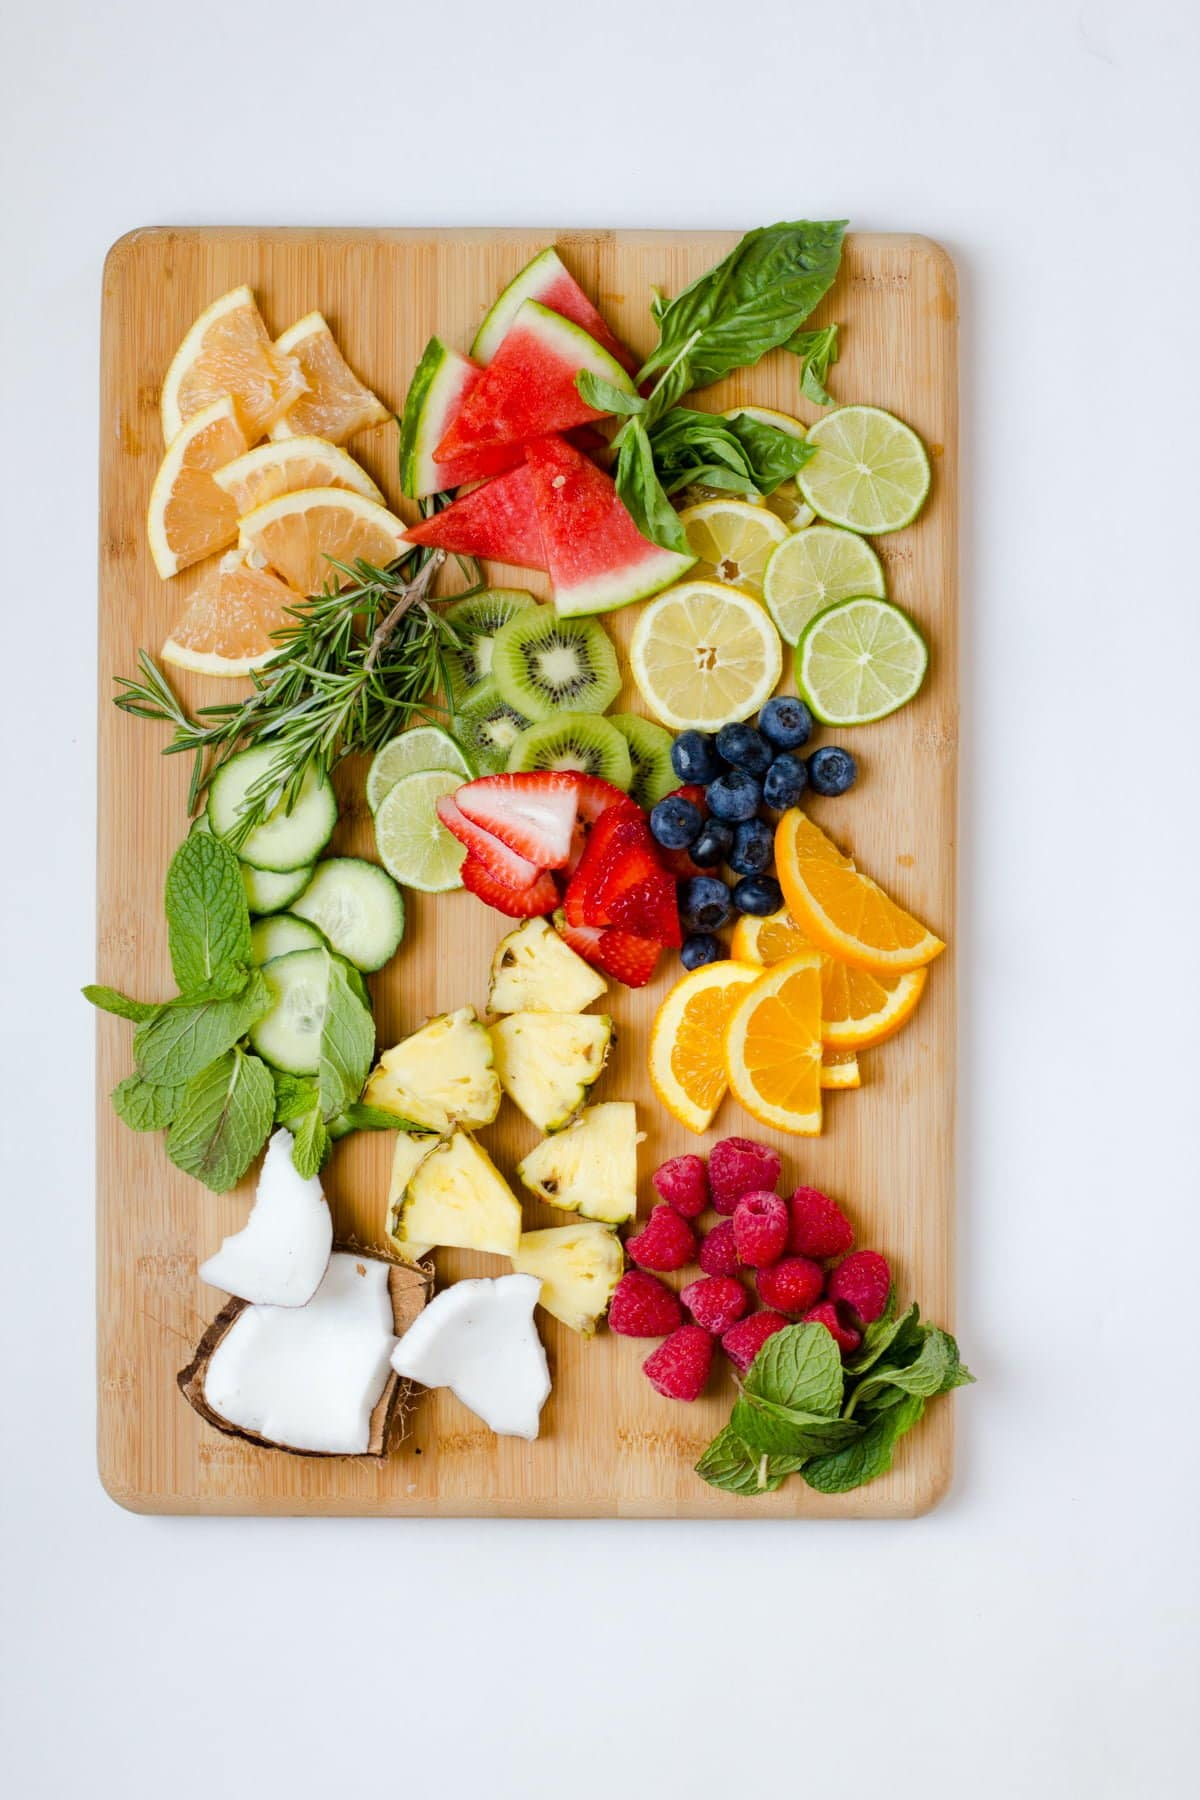 Overhead of a wide variety of sliced fruits and herbs arranged on a wooden cutting board.